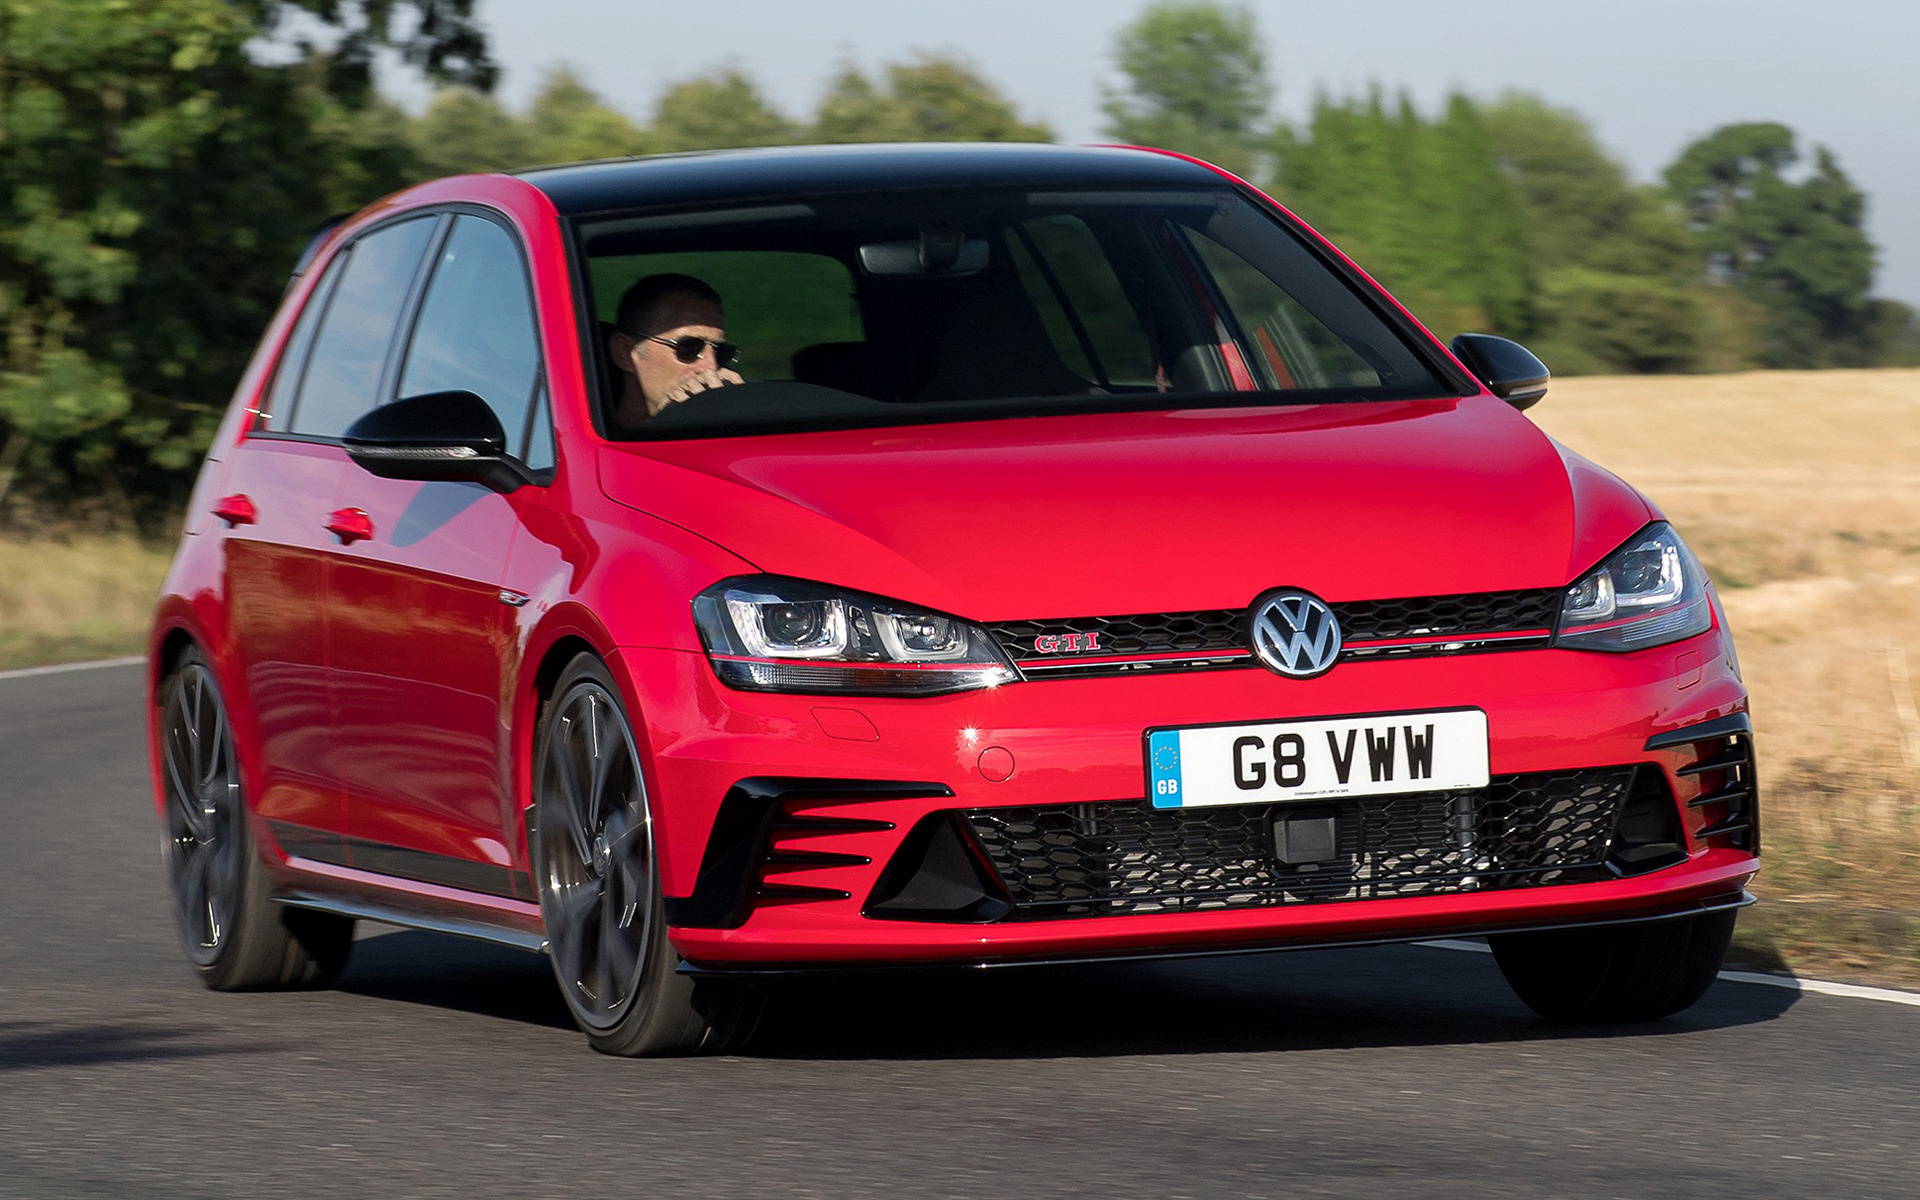 2016 Volkswagen Golf Gti Clubsport Edition 40 5 Door Uk